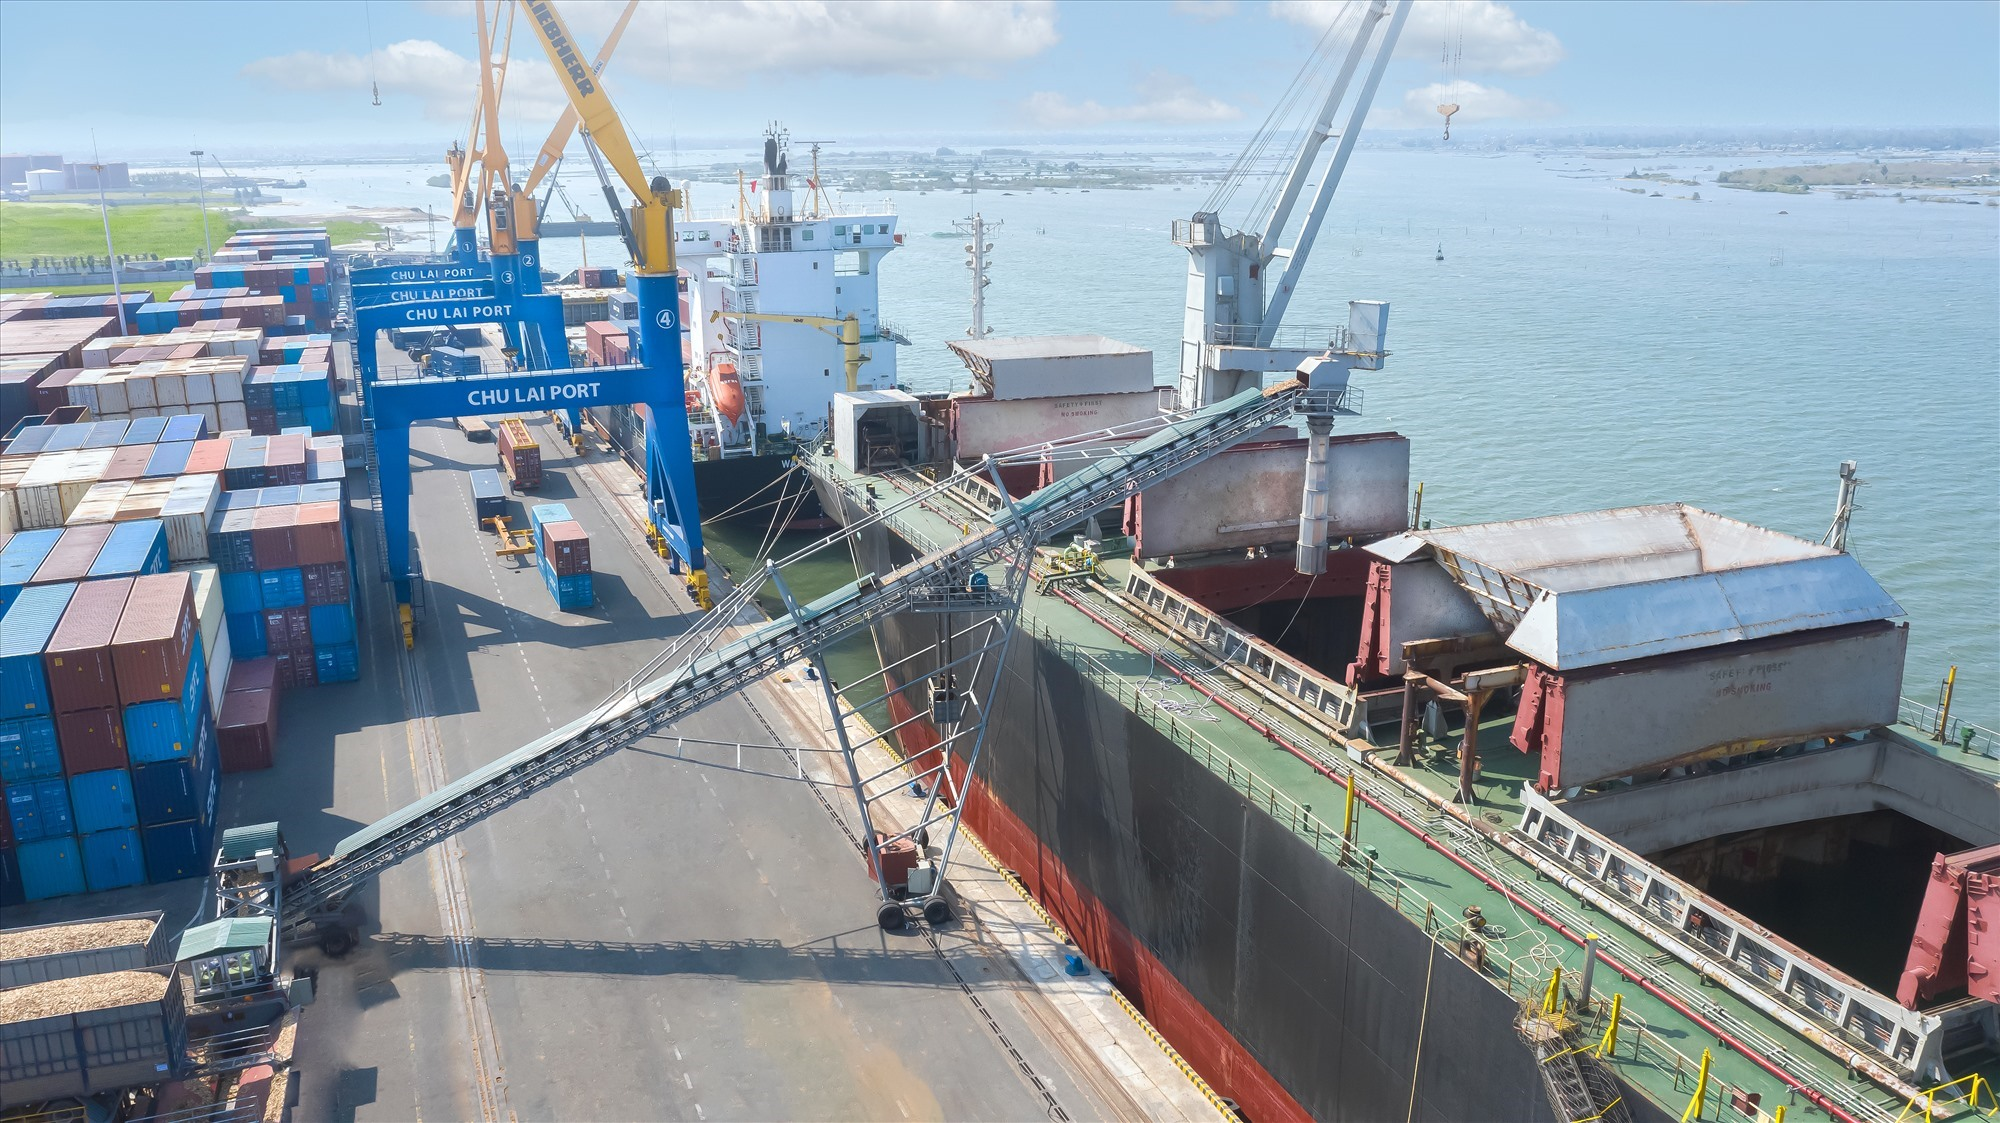 Goods is loaded onto ships for export.